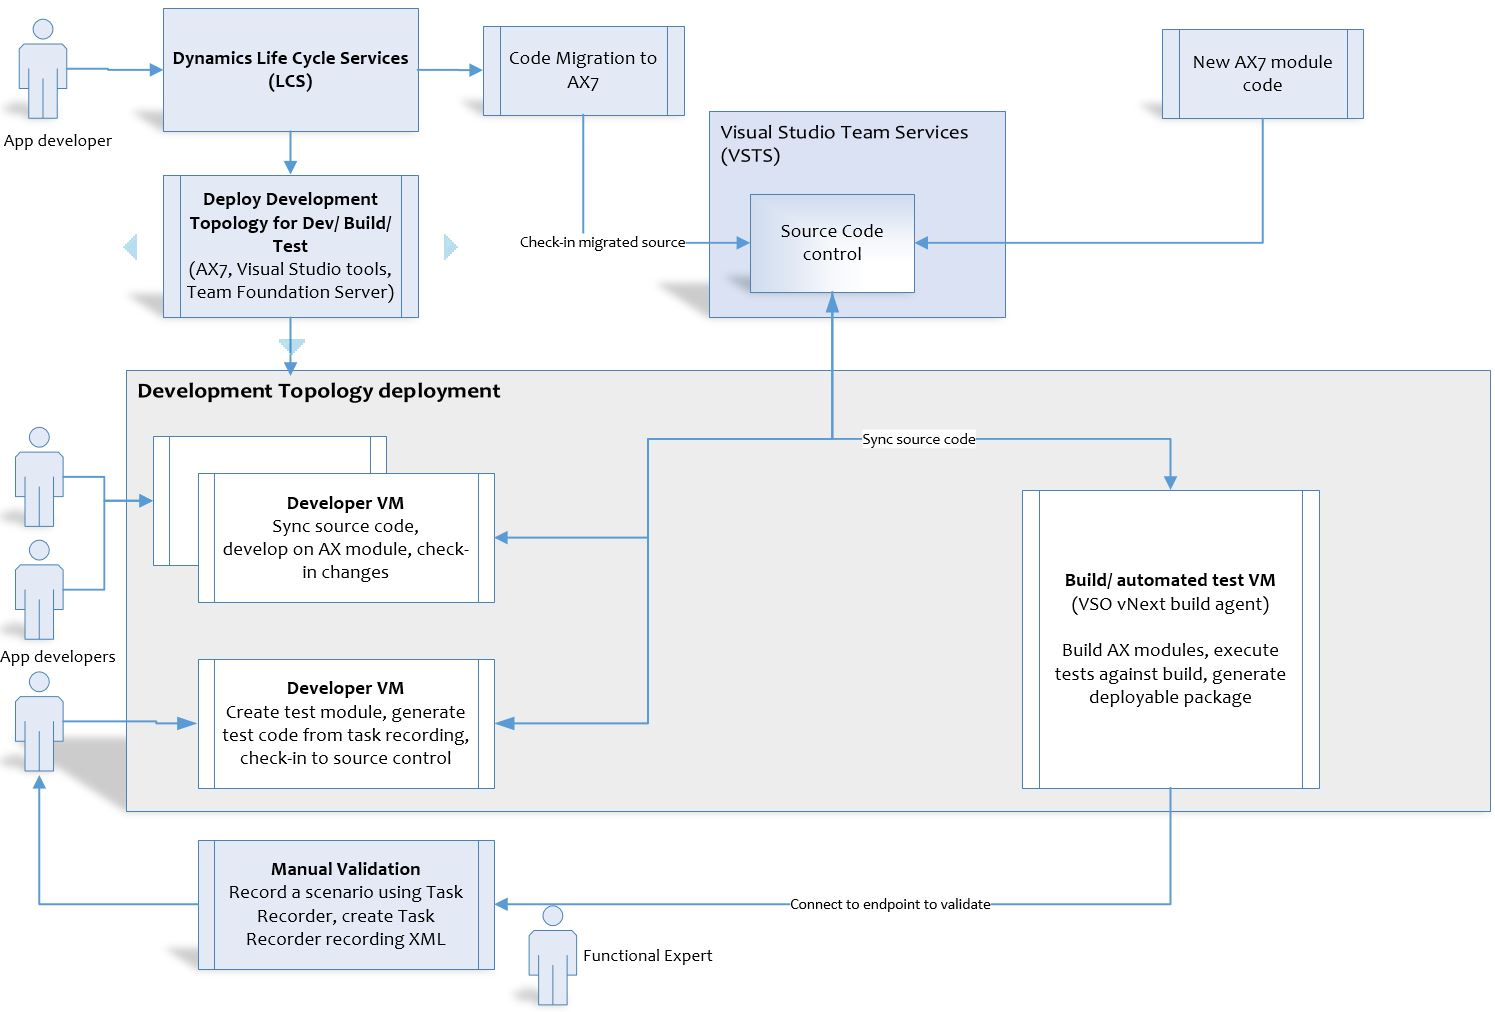 Deploy topologies that support continuous build and test automation ...